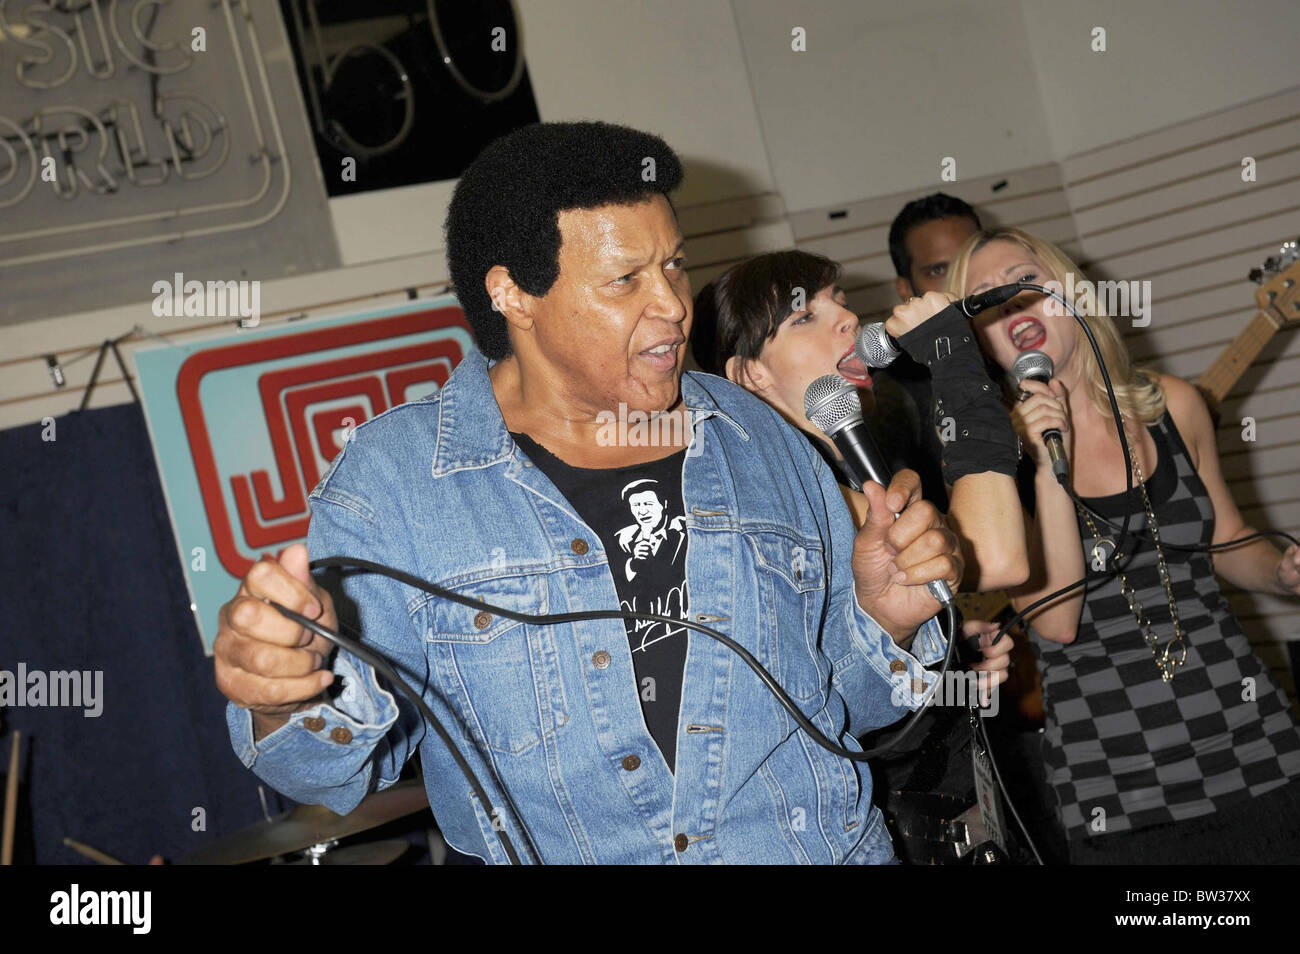 Chubby Checker ALL THE BEST Record Signing and Concert - Stock Image